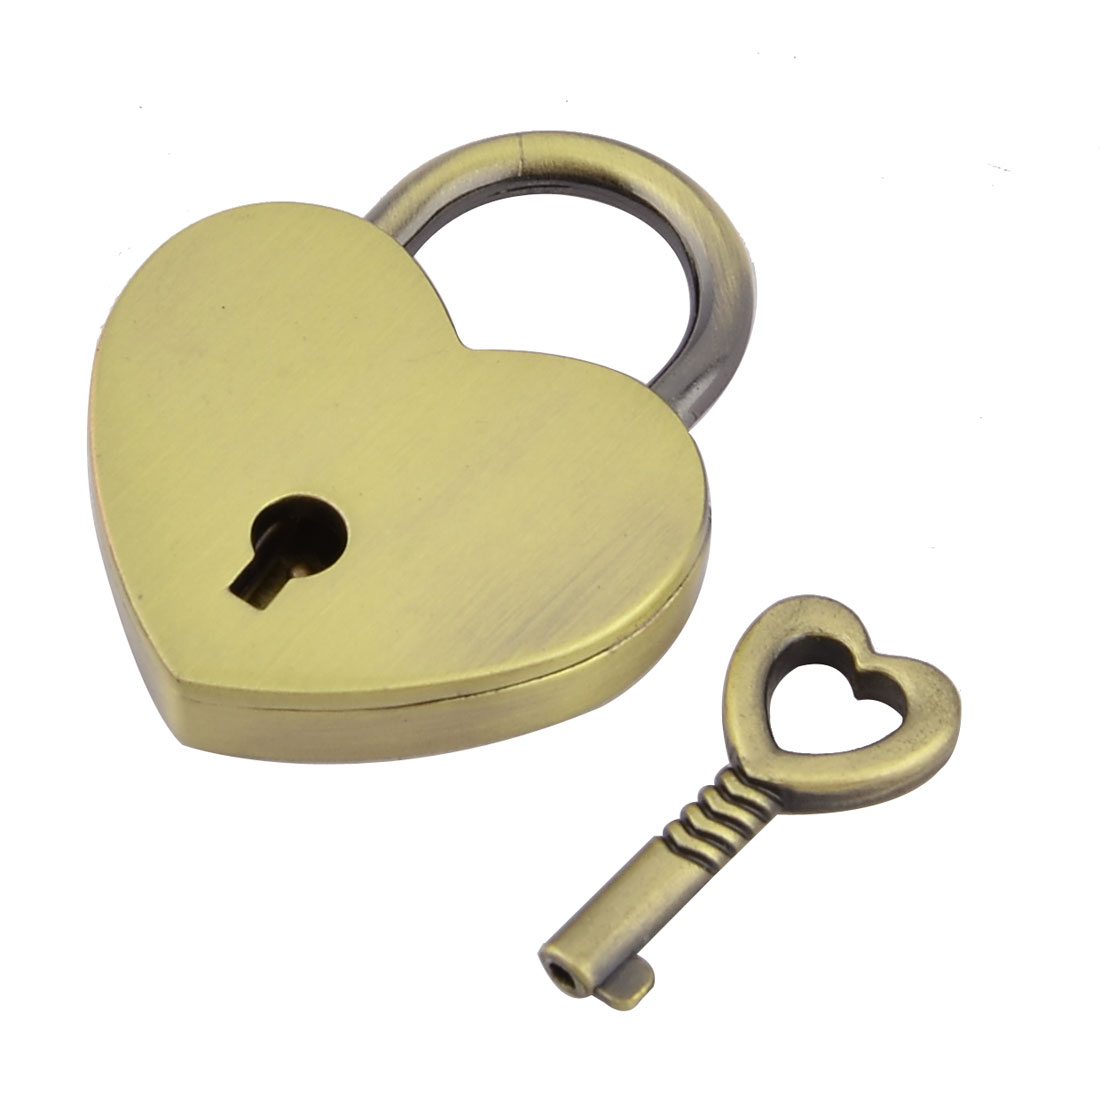 Luggage Cabinet Metal Heart Shaped Security Lock Padlock Copper Colored w Skeleton Key